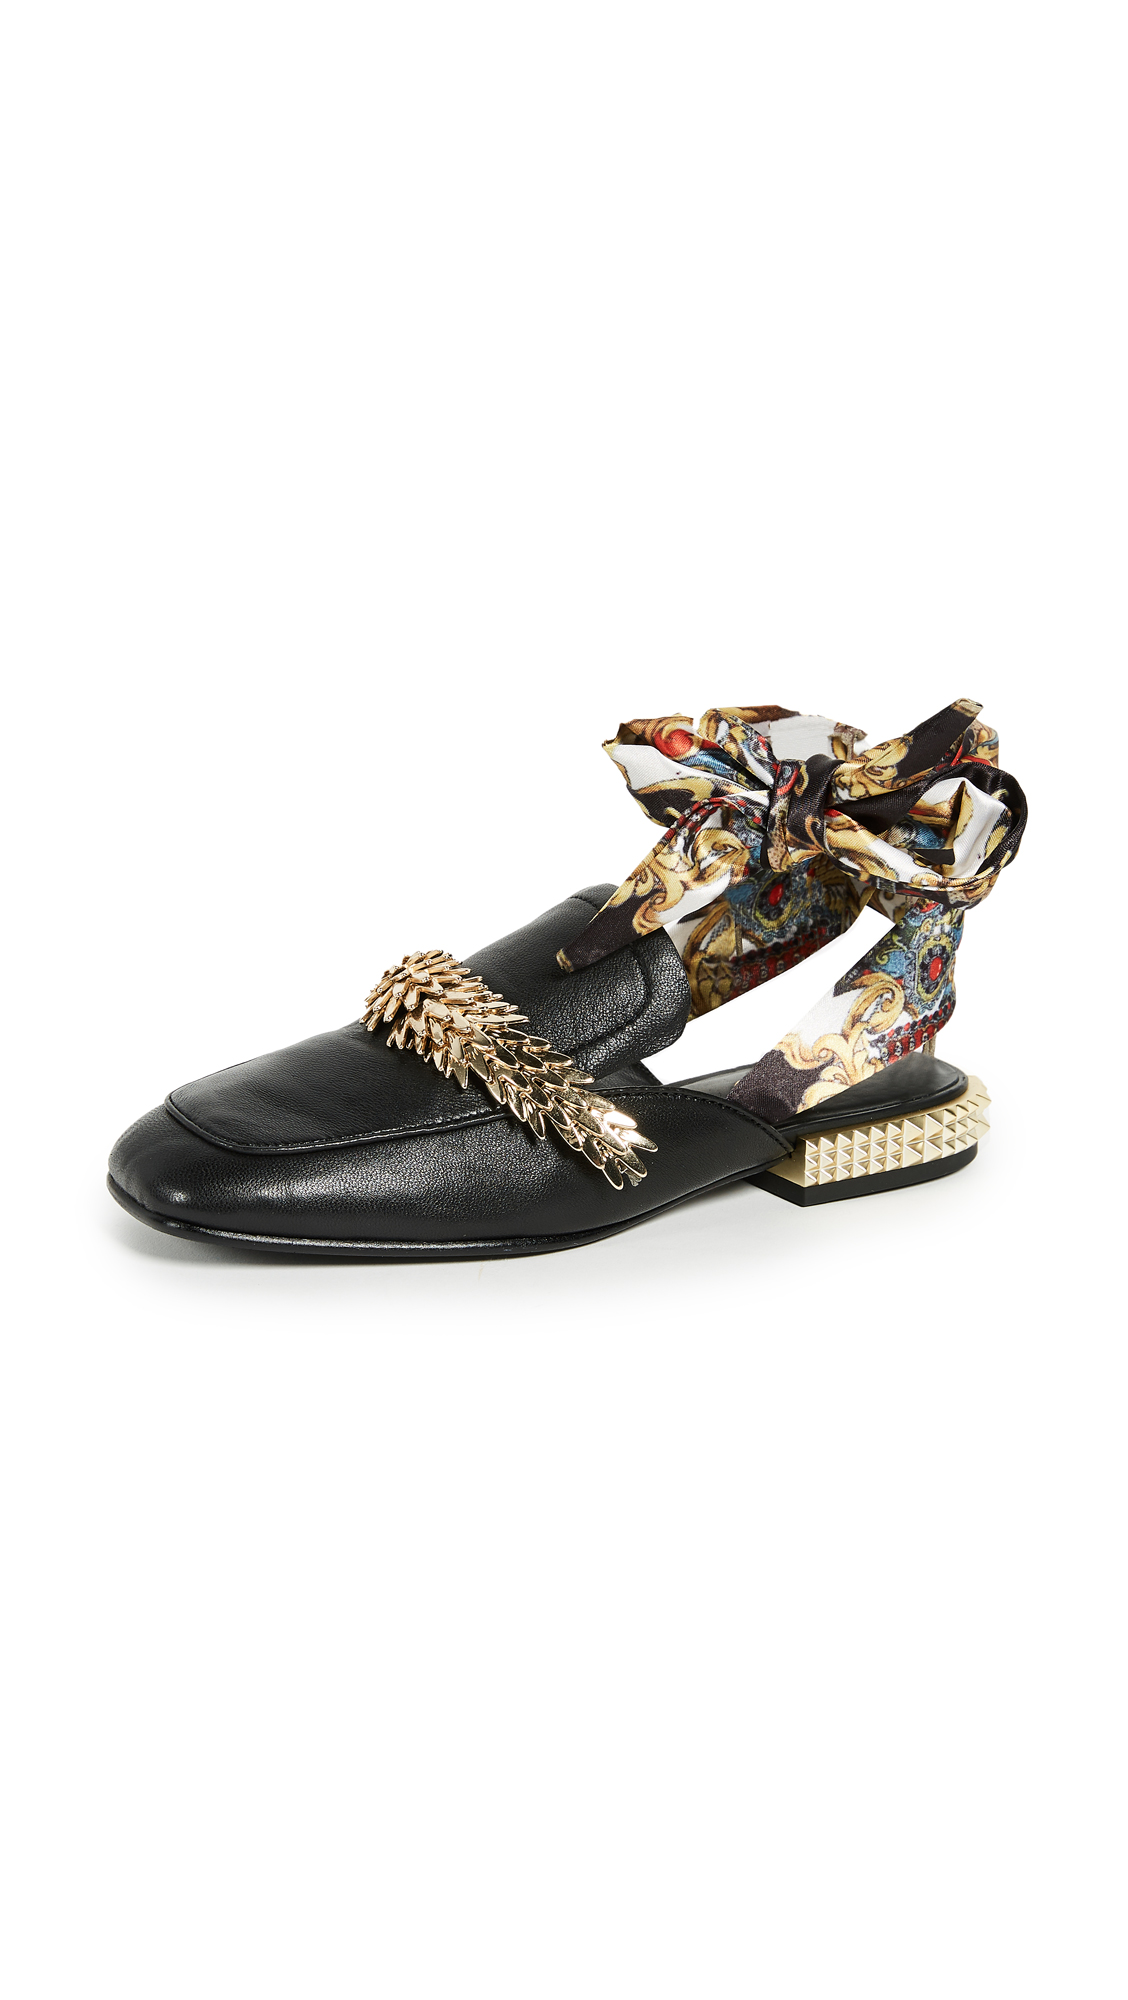 Ash Elite Scarf Mules - Black/Gold